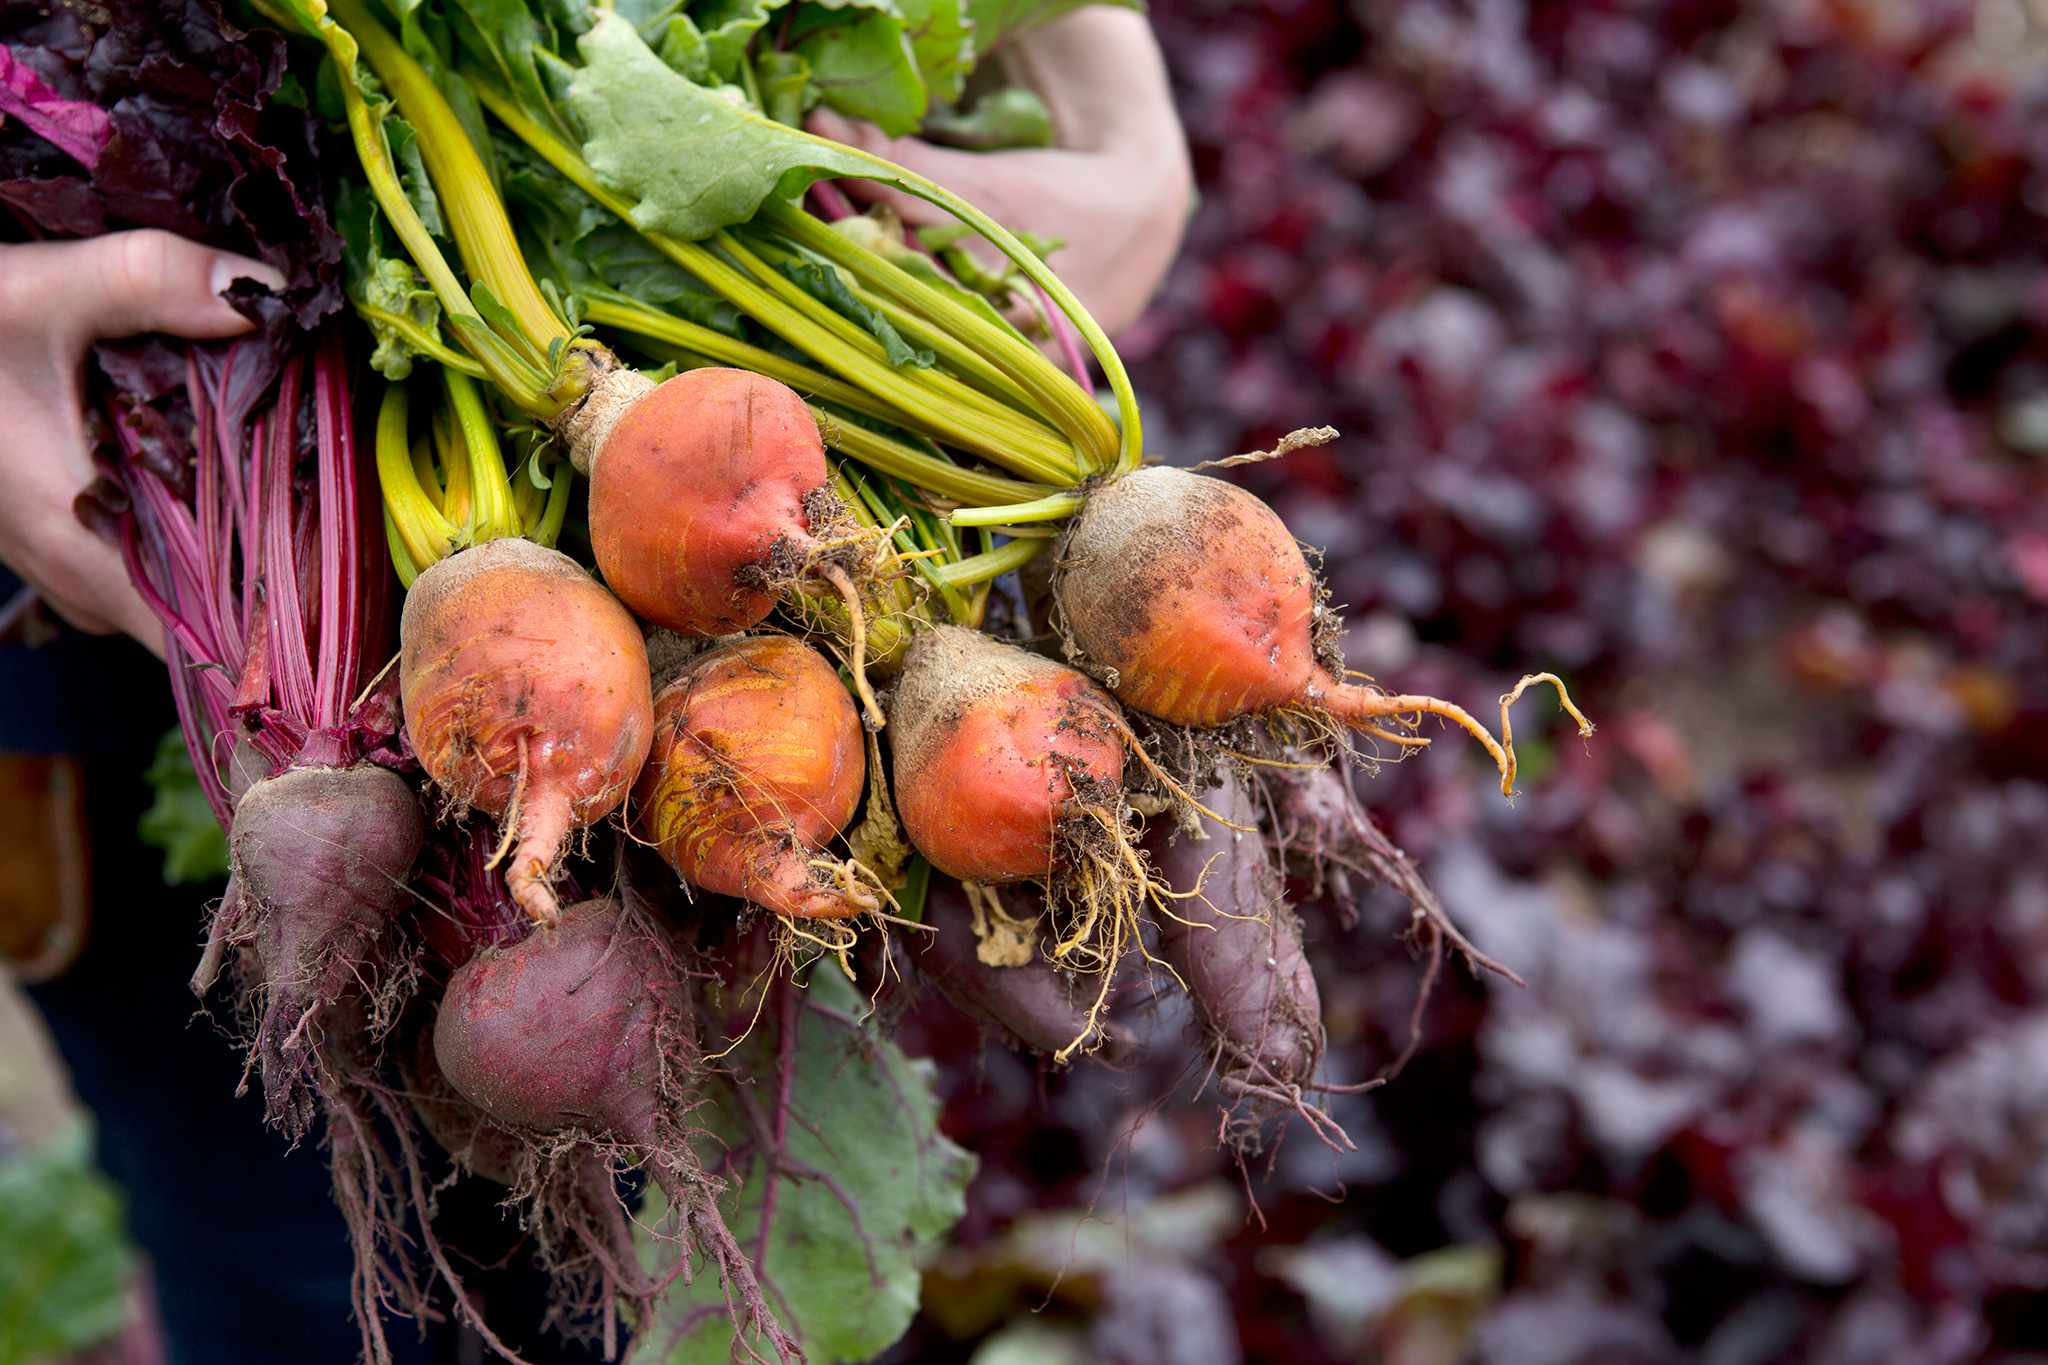 Freshly harvested beetroots